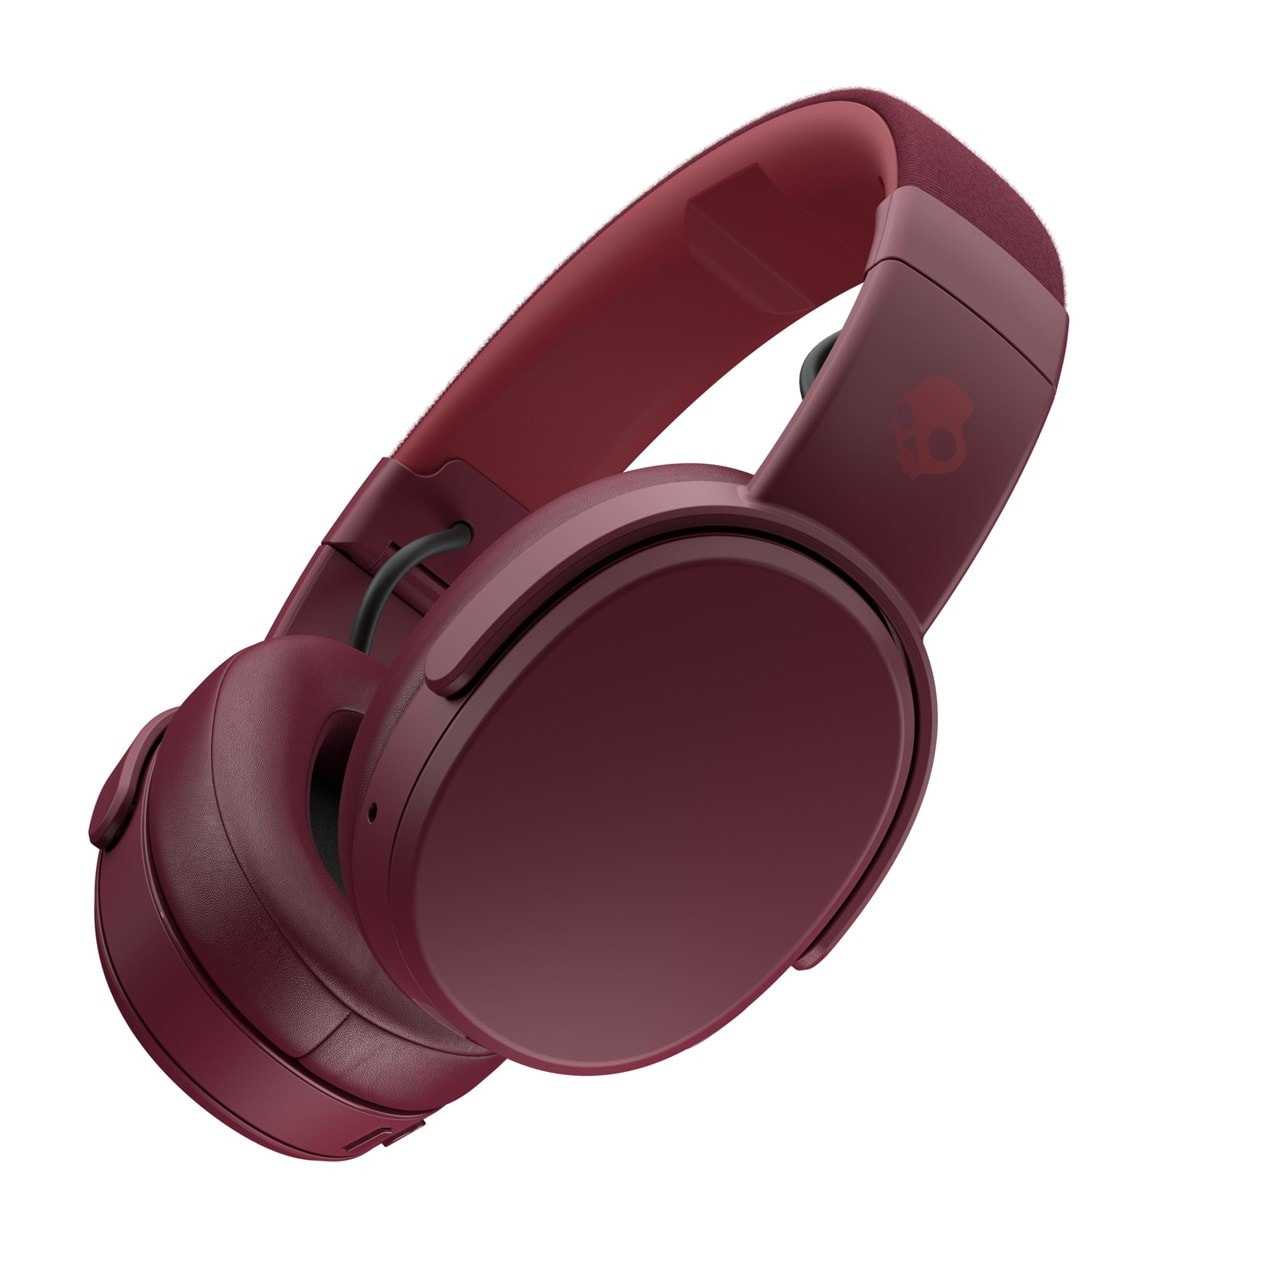 Skullcandy Crusher Moab Red Bluetooth Headphones - 2